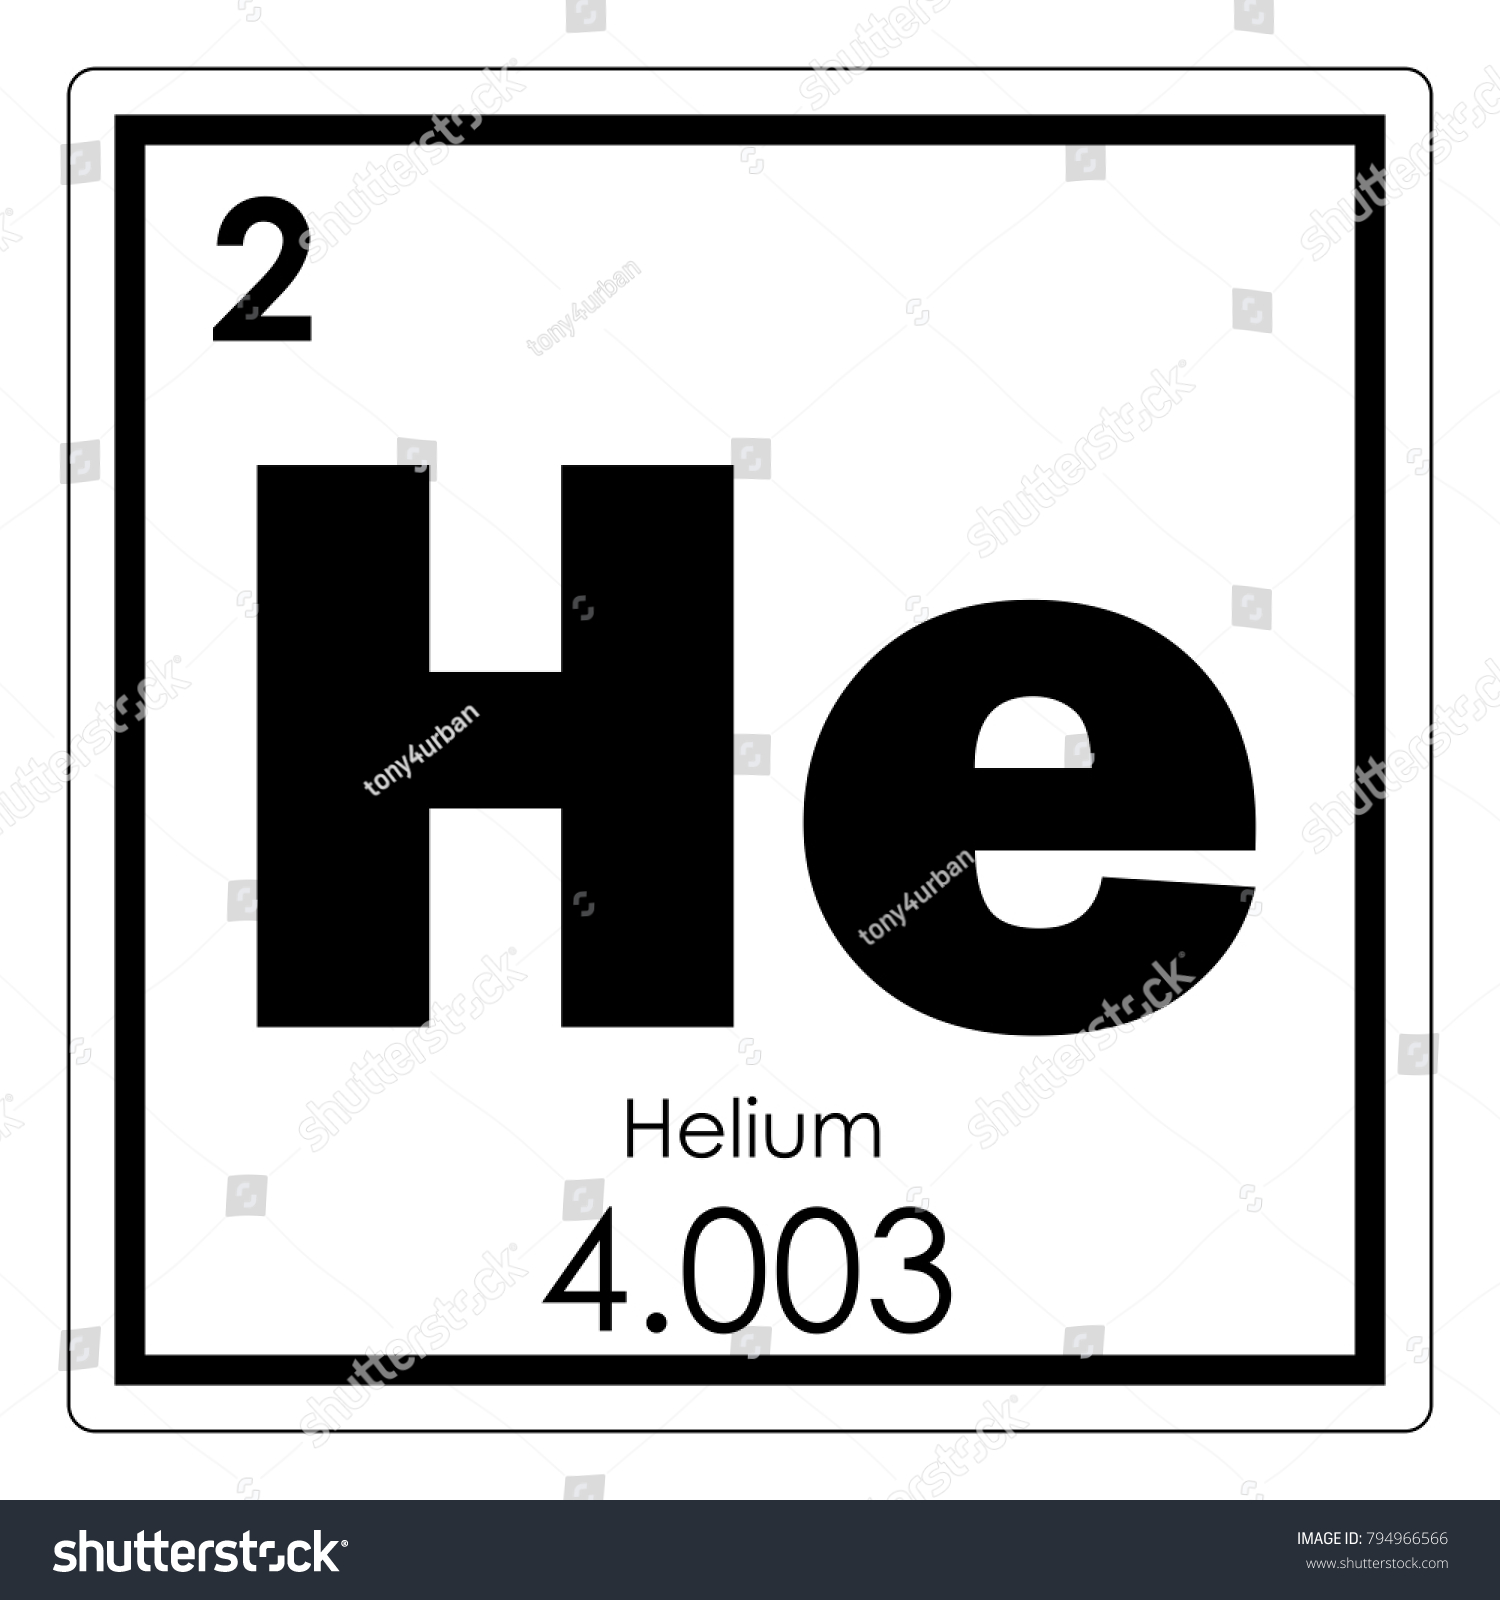 Helium chemical element periodic table science stock illustration helium chemical element periodic table science symbol urtaz Image collections